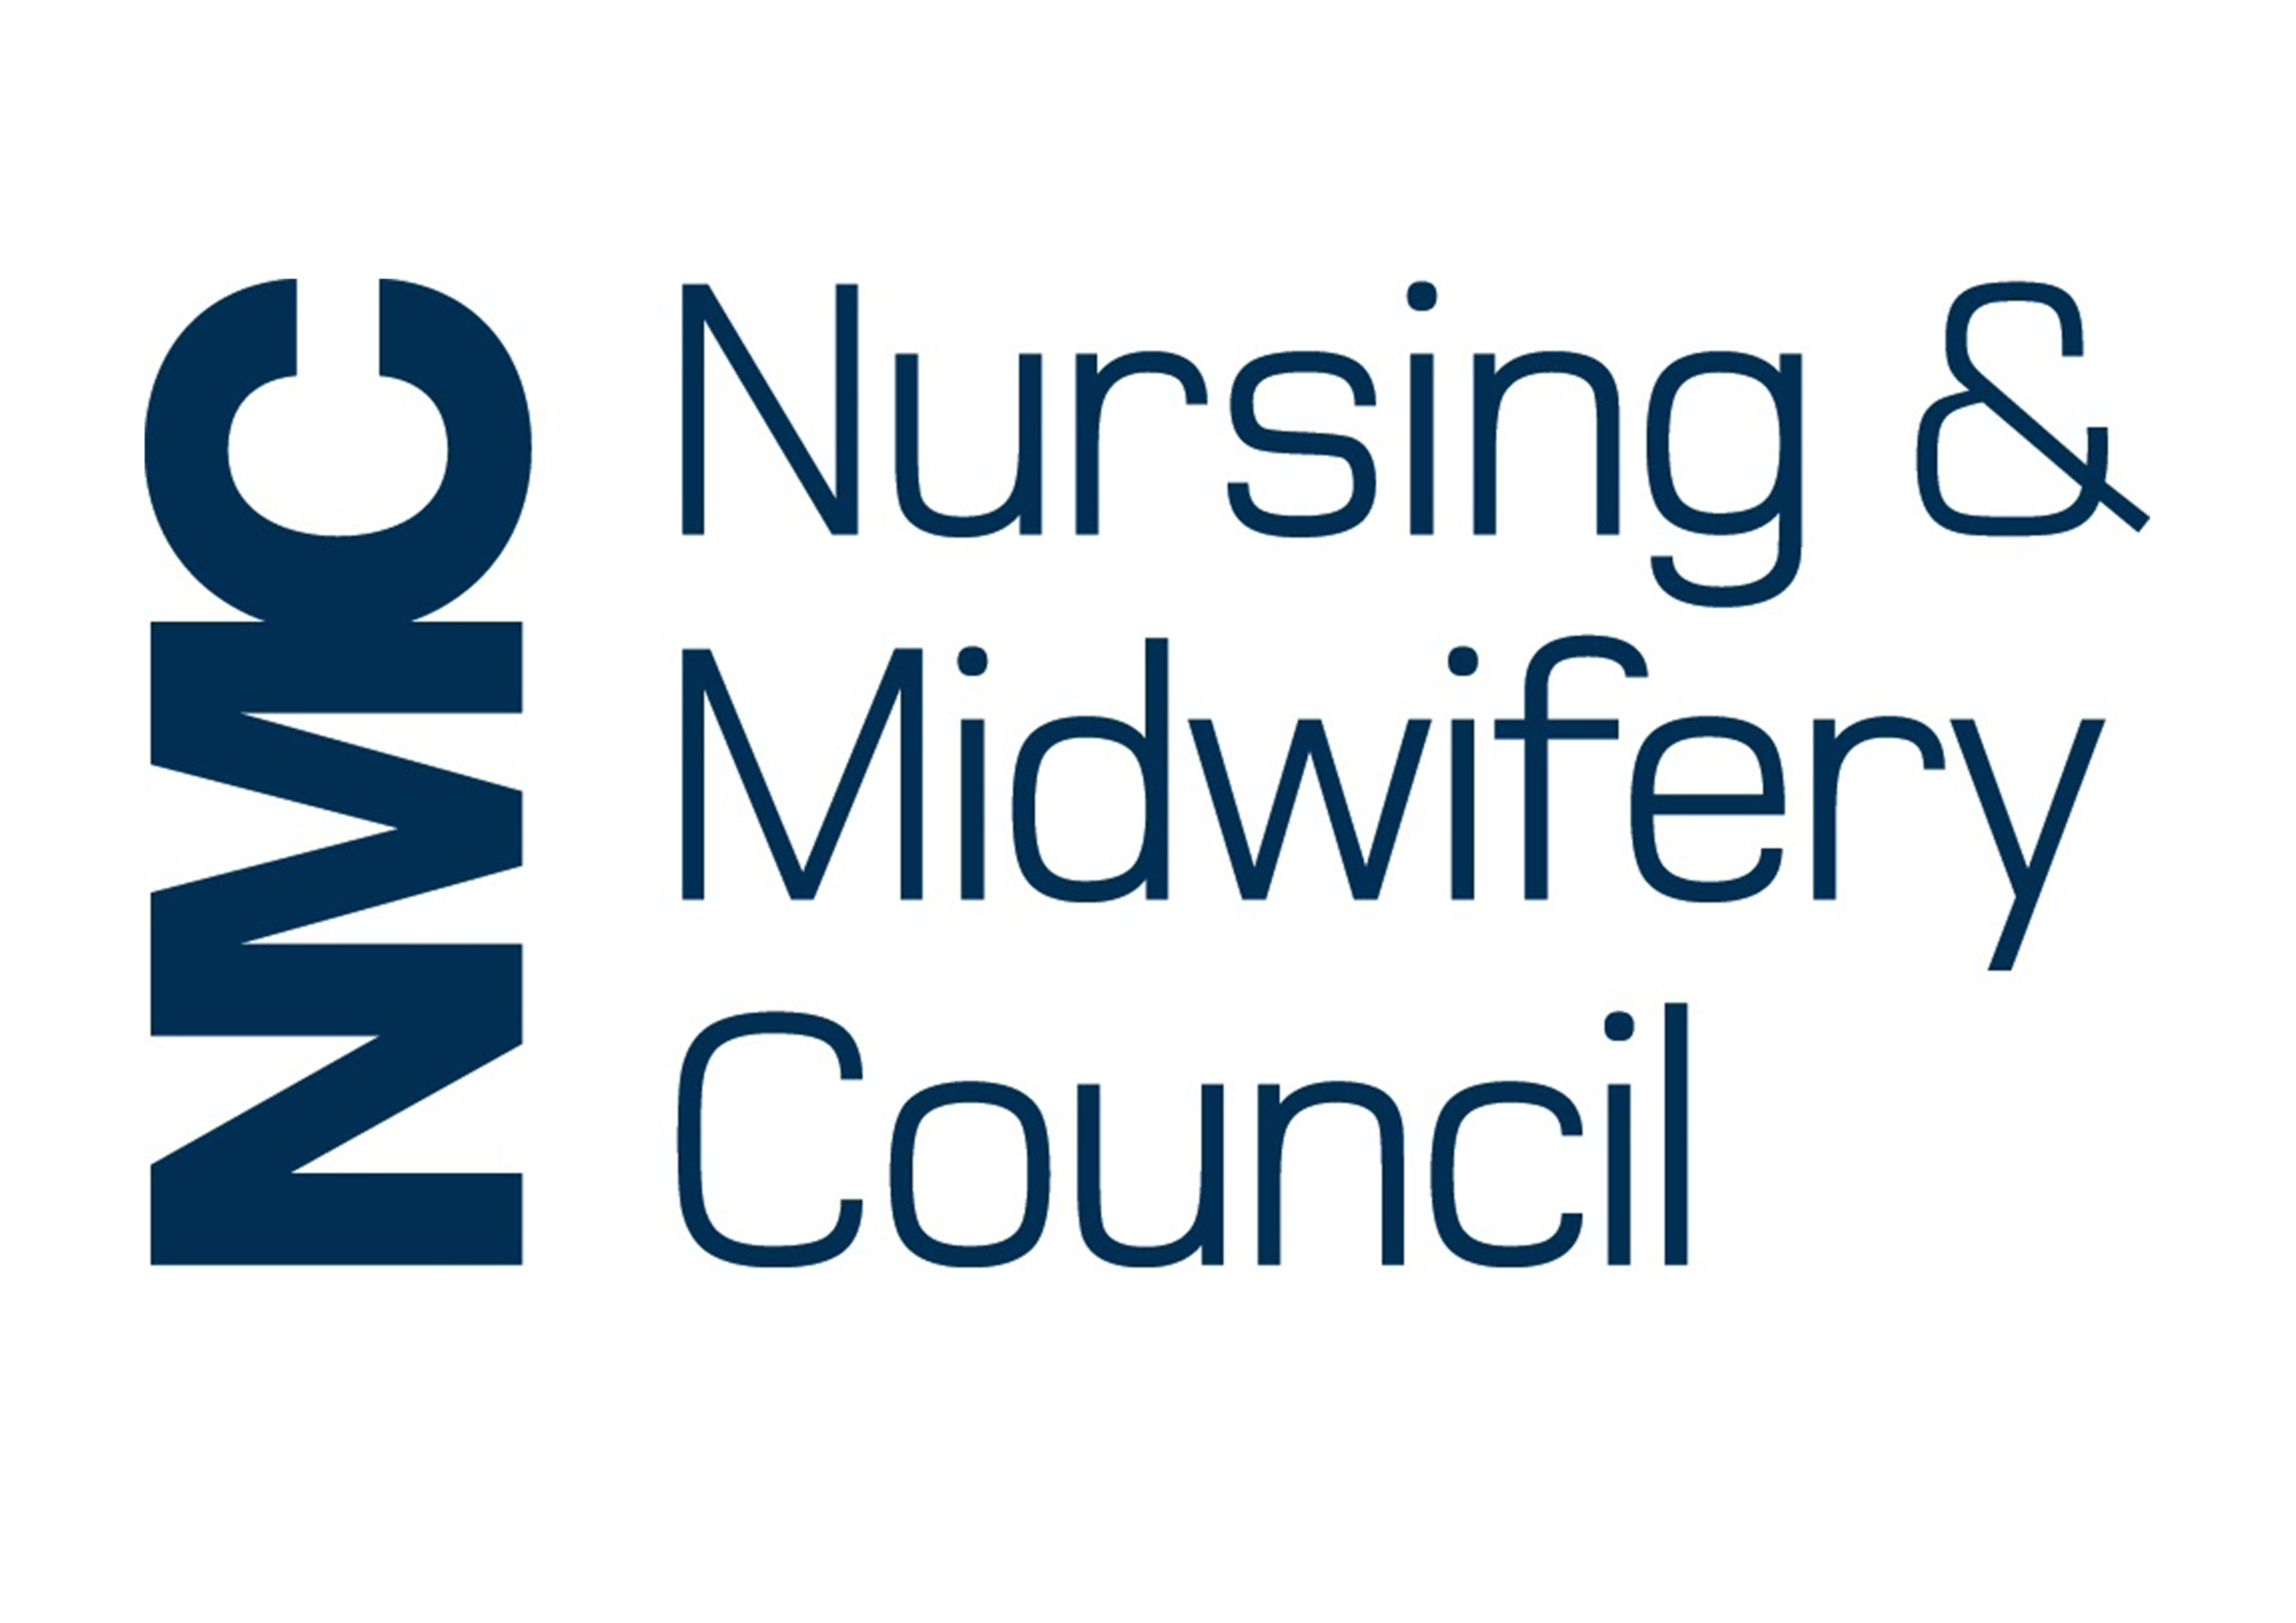 1245596_NMC_nursing_and_midwifery_council_logo_blue_jpg.png